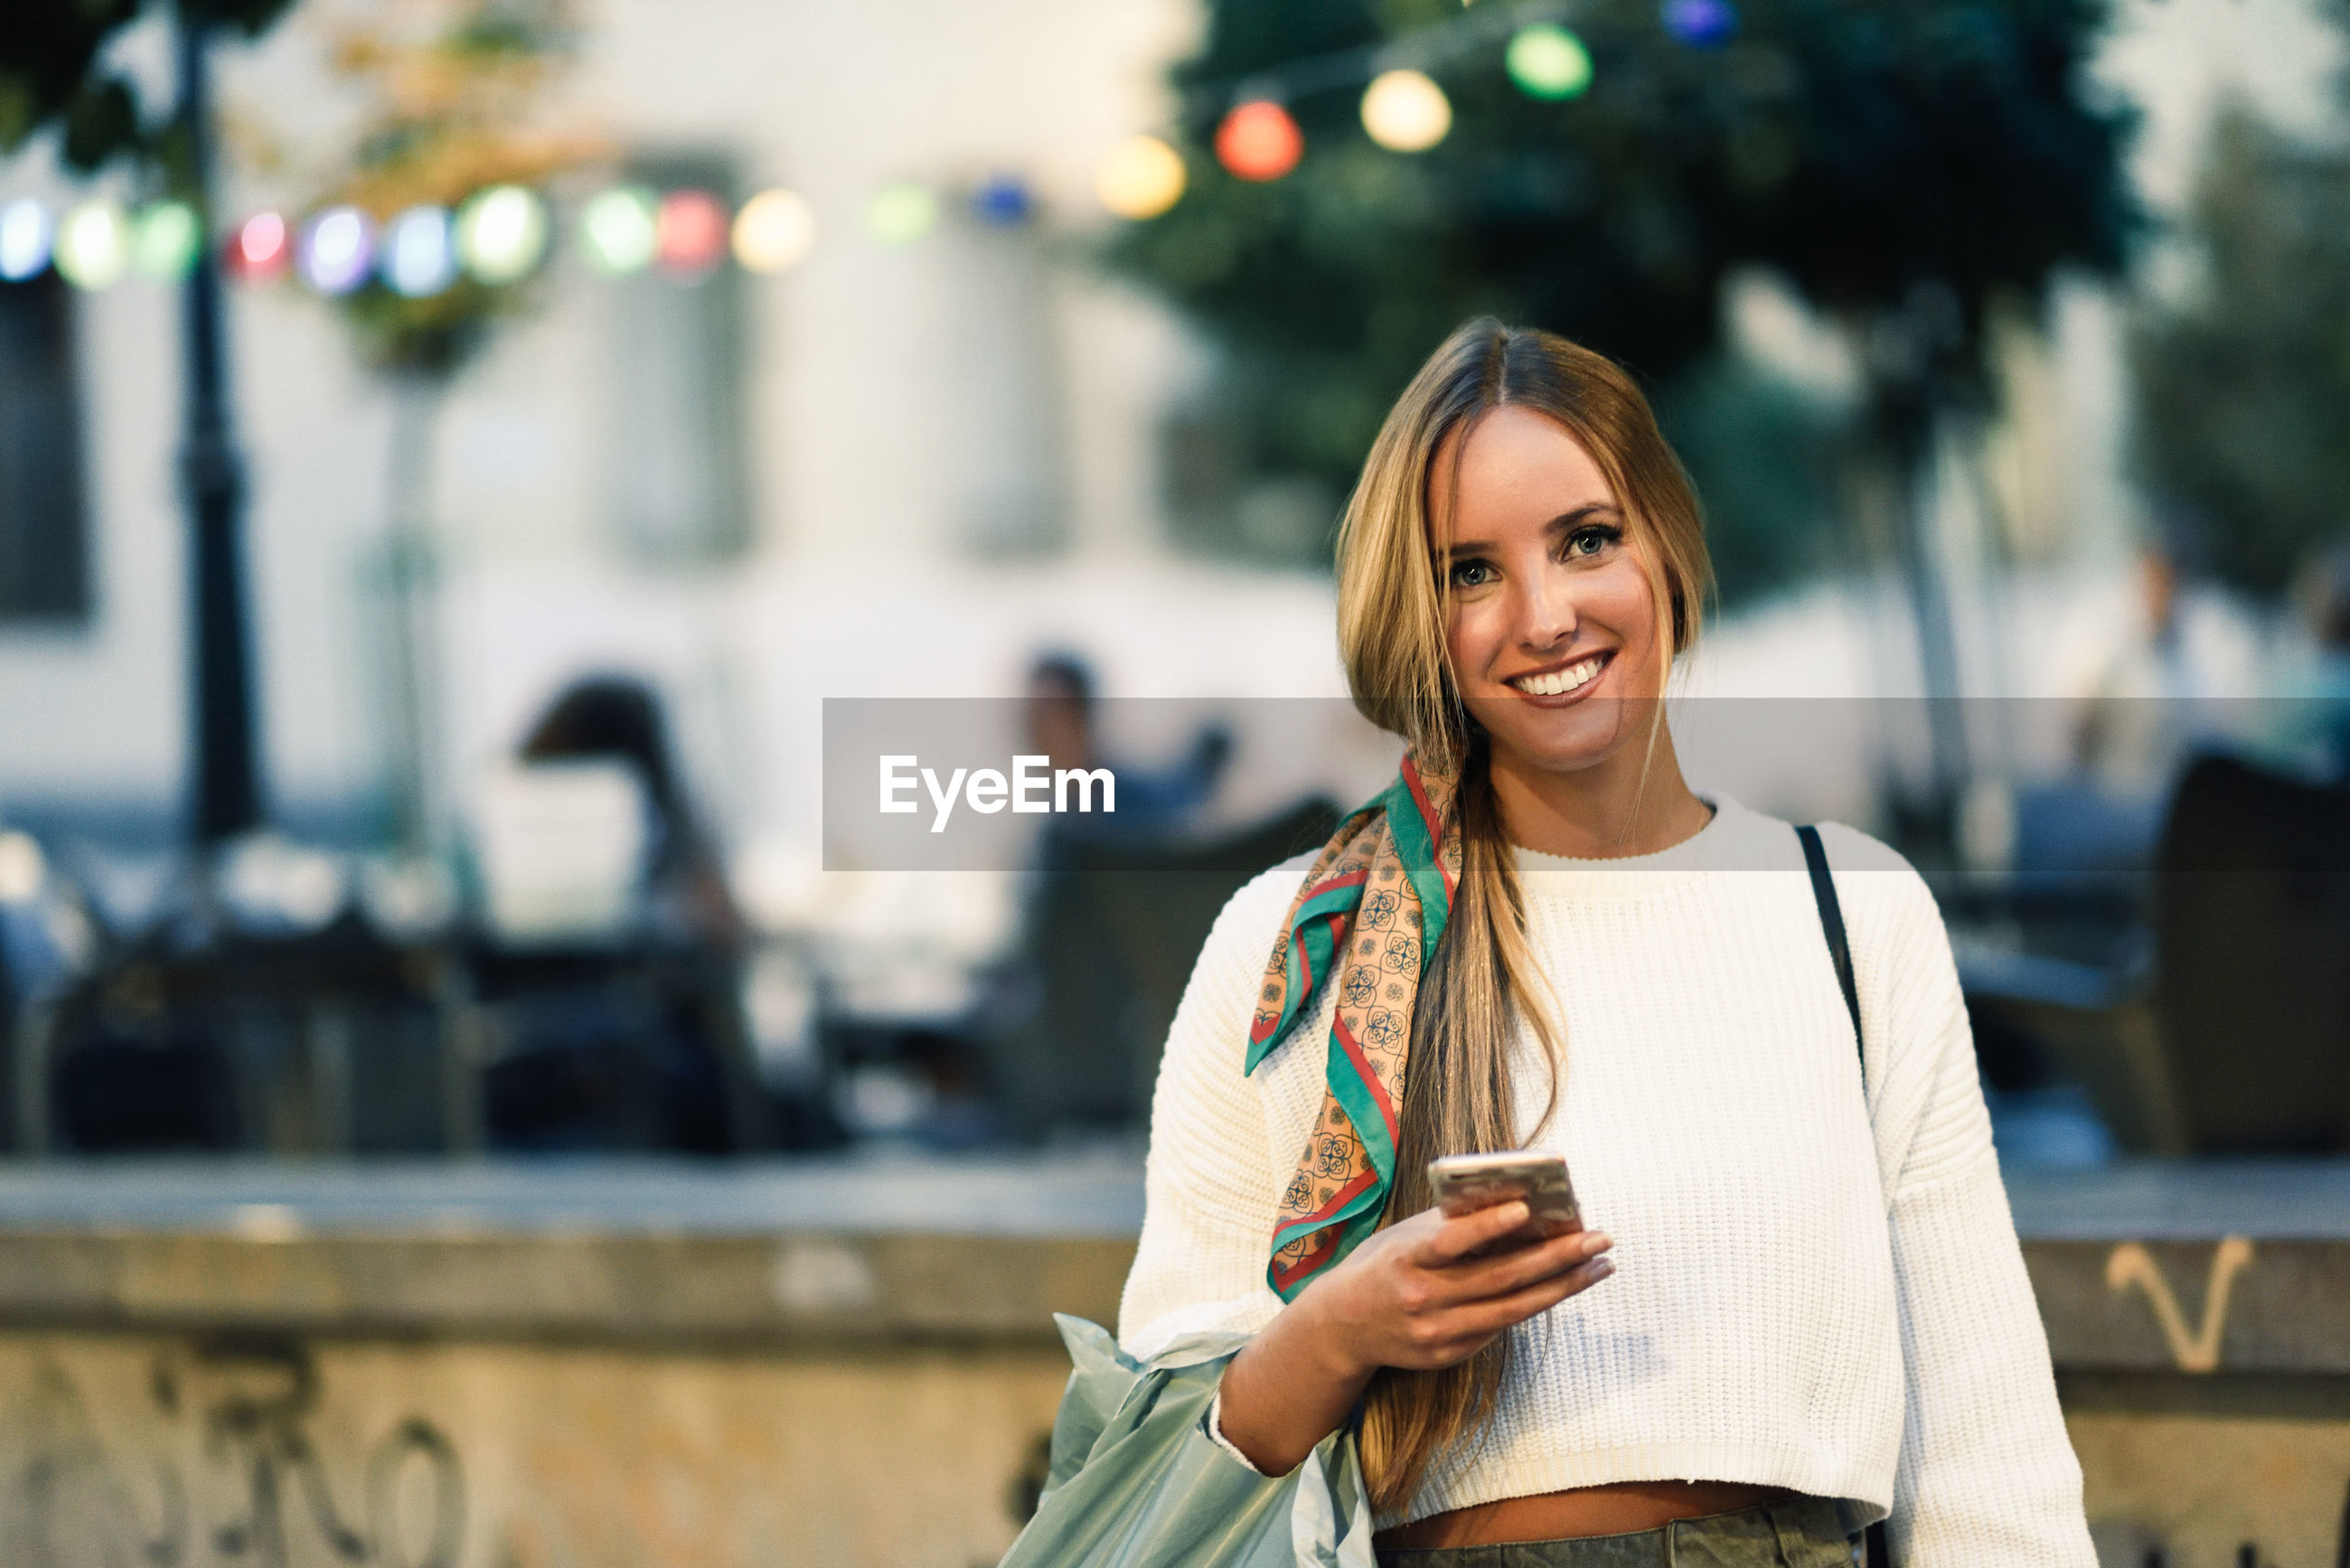 Portrait of smiling young woman using mobile phone while standing in city